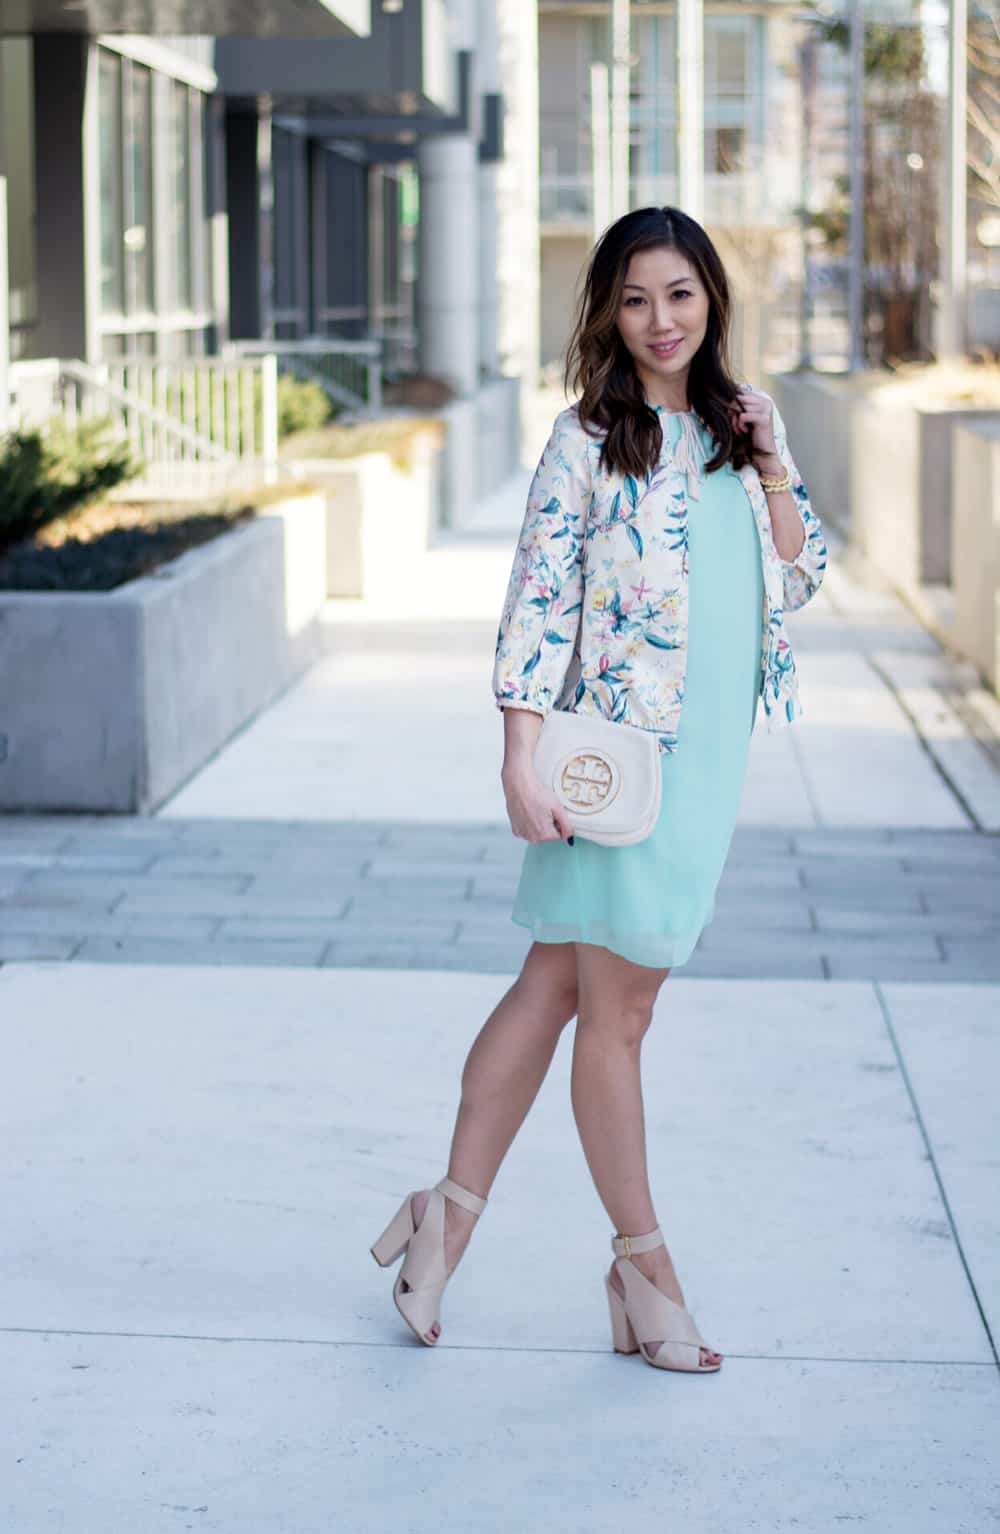 Spring streetstyle: Spring dress and floral bomber from LC Lauren Conrad Dress Up Shop, Special occasion dressing like wedding guests, showers, birthday parties, engagement parties etc.